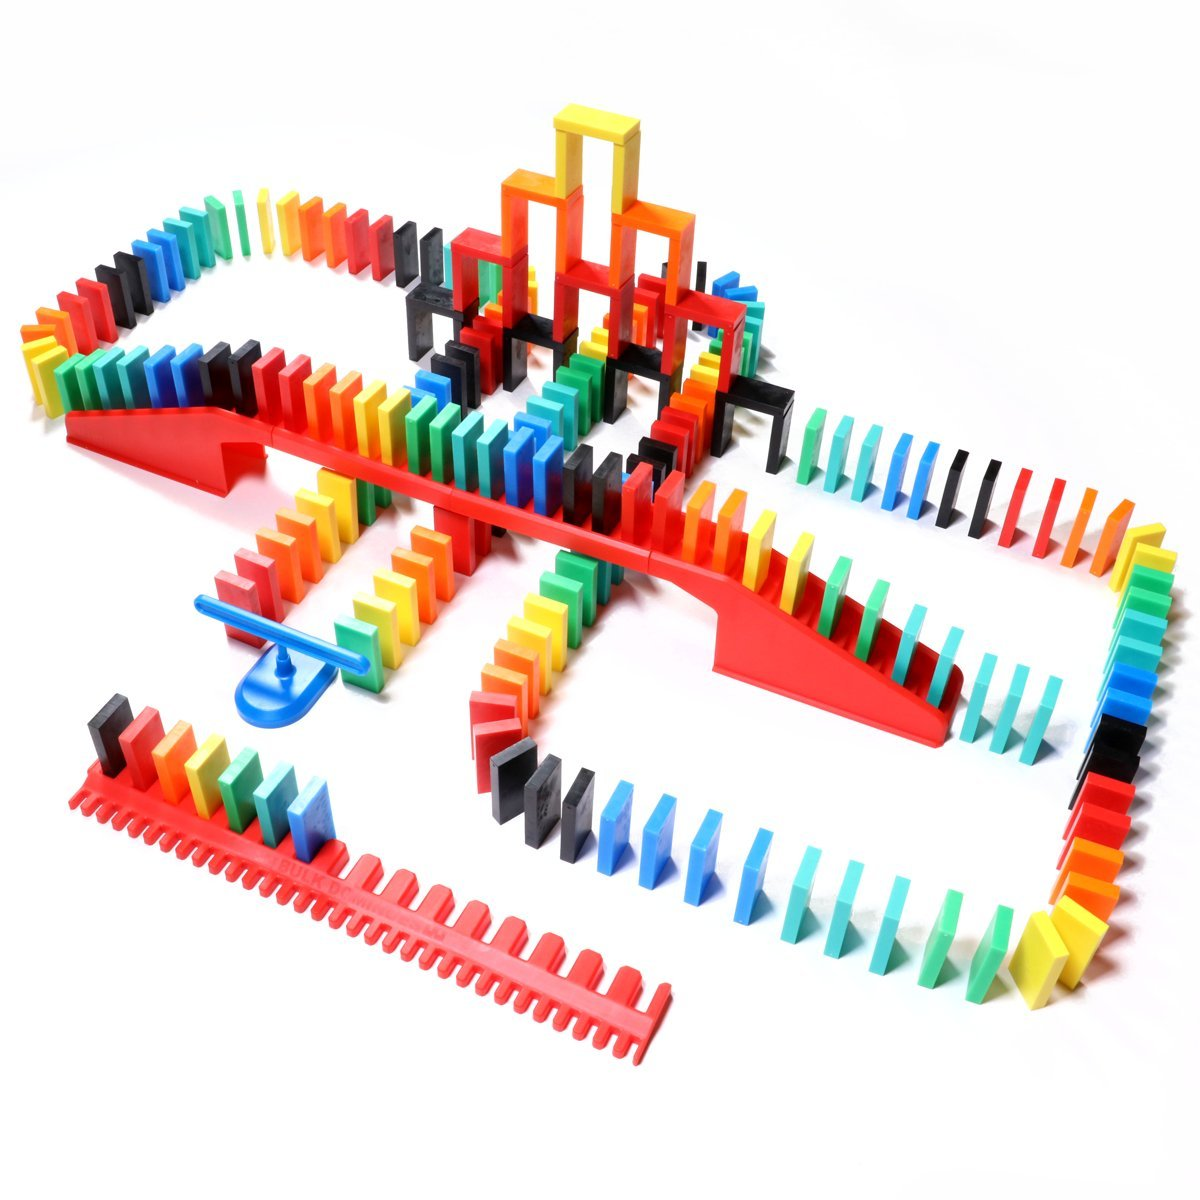 Bulk Dominoes 206pcs Pro-Domino Starter kit | pro-Scale, Premium Stacking & toppling Domino Set Chain Reaction STEAM Building Toy Set